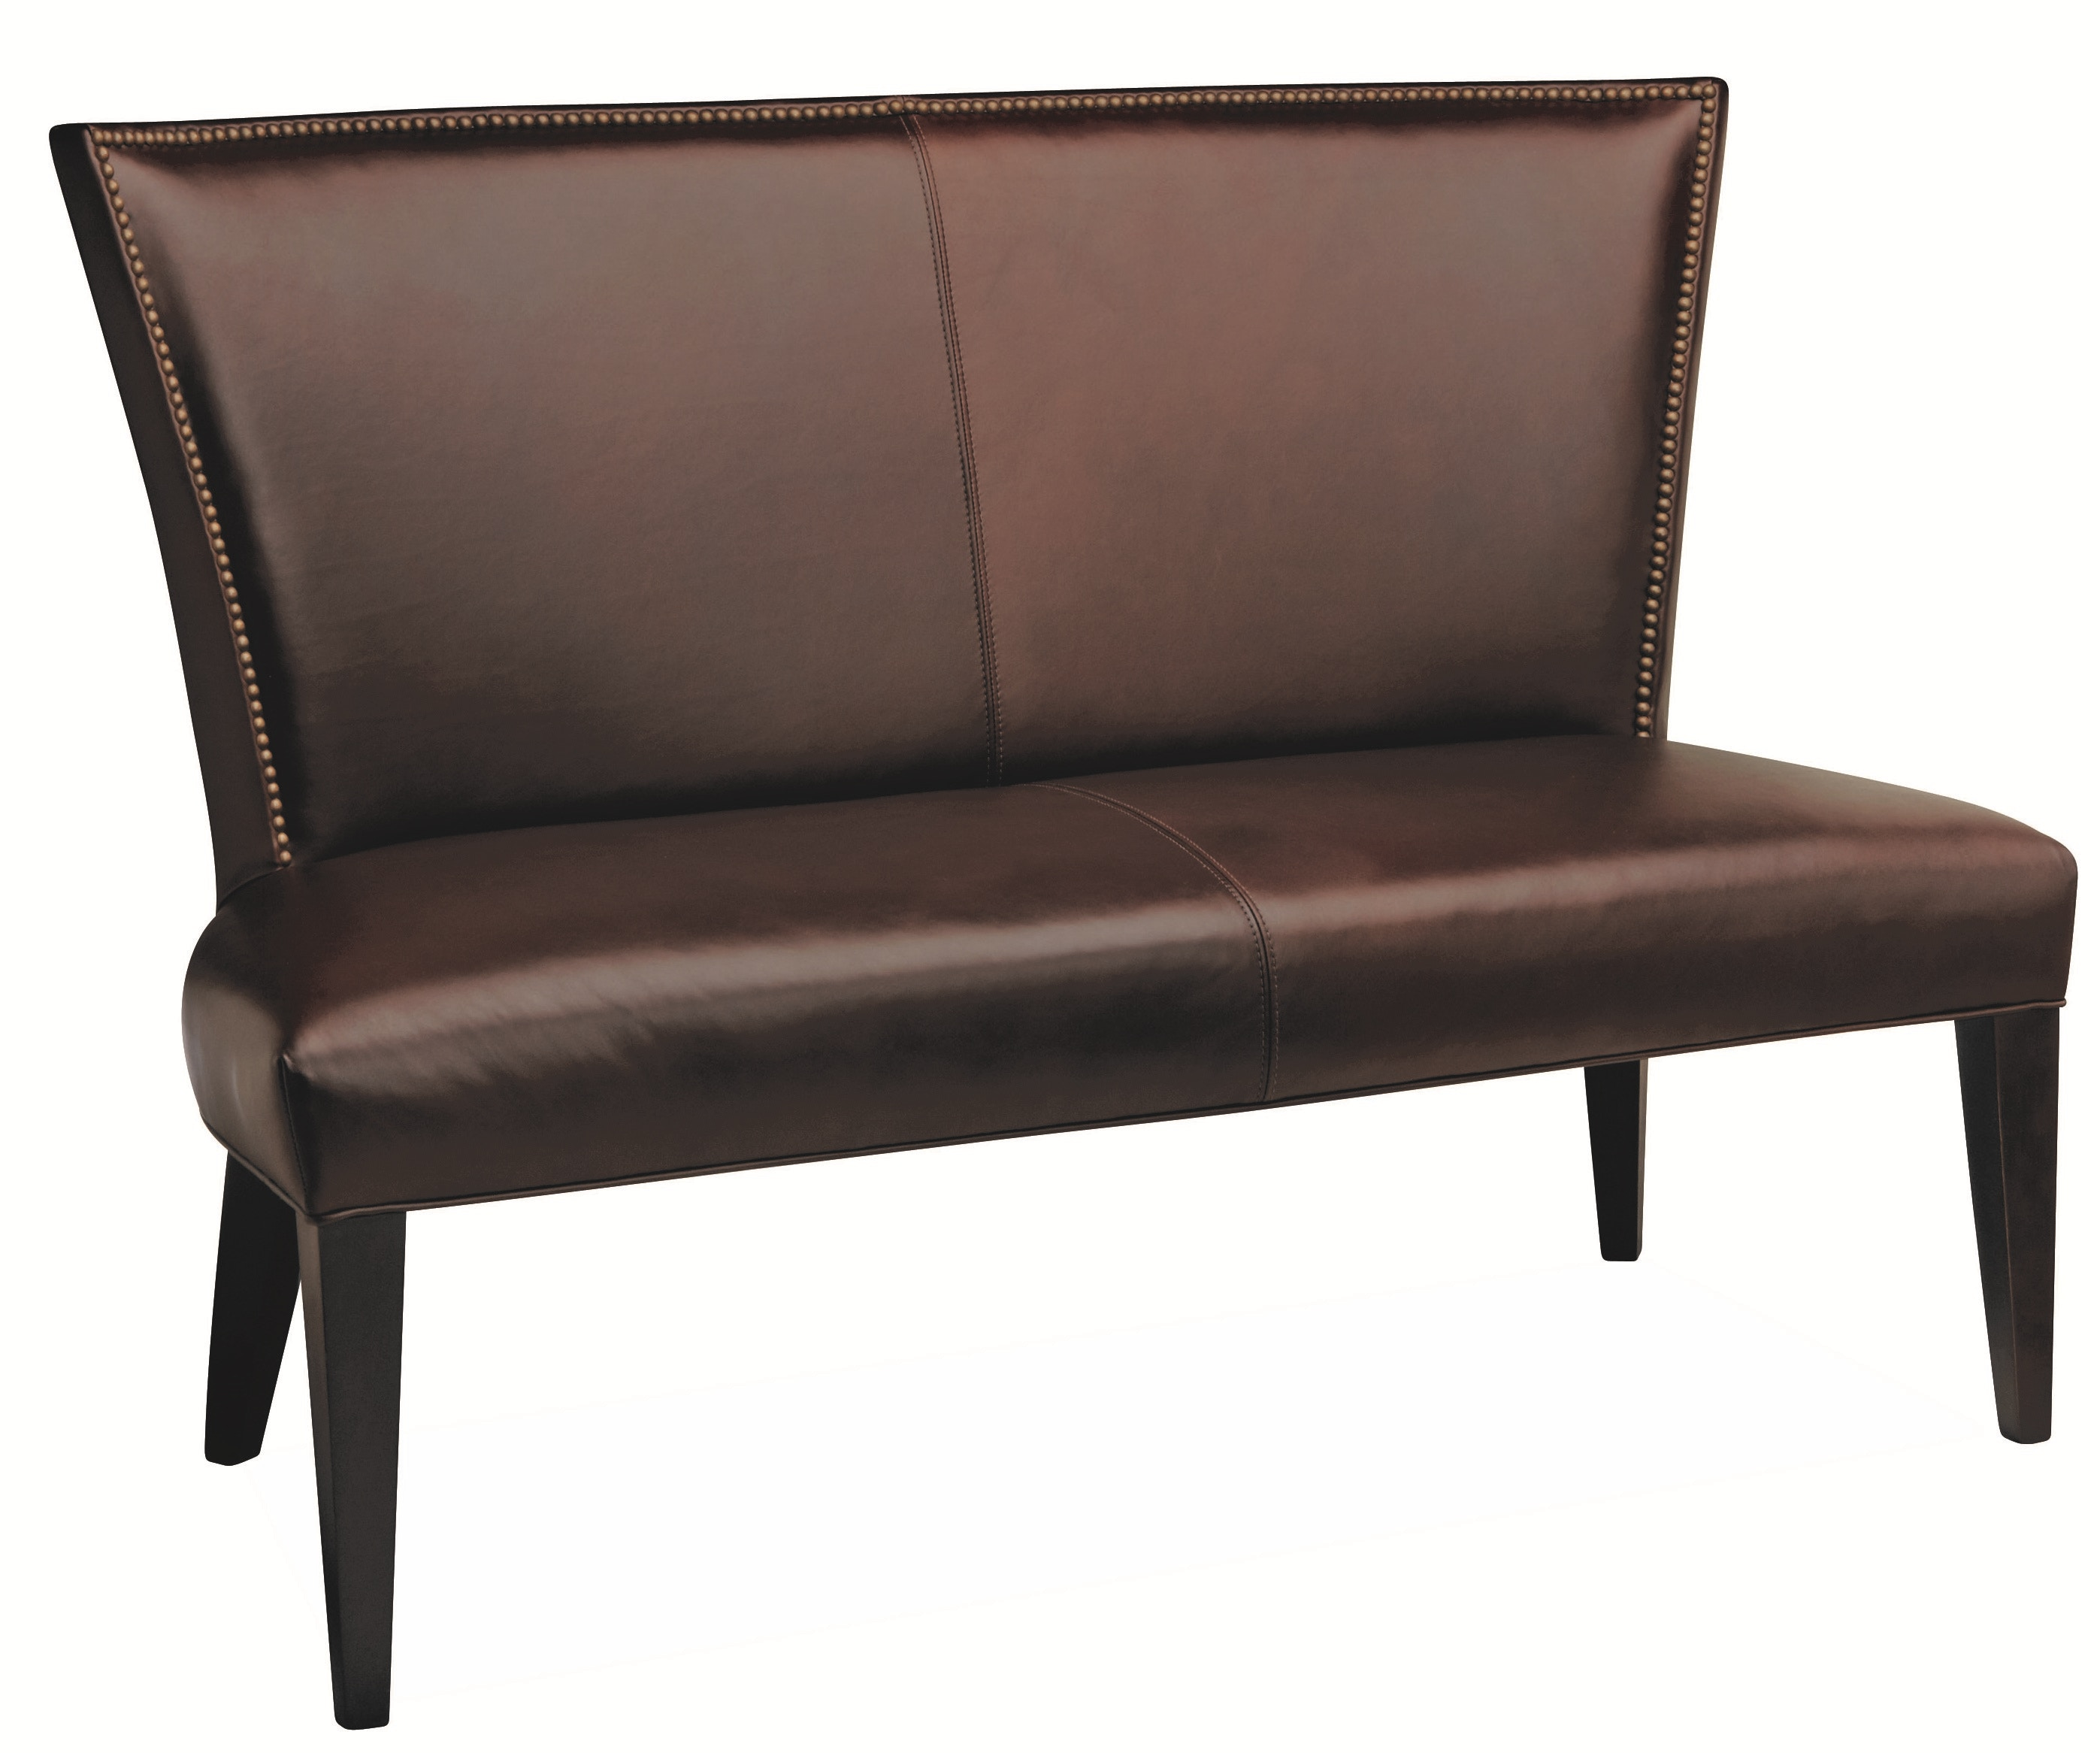 Lee Industries Leather Dining Bench L5673 56